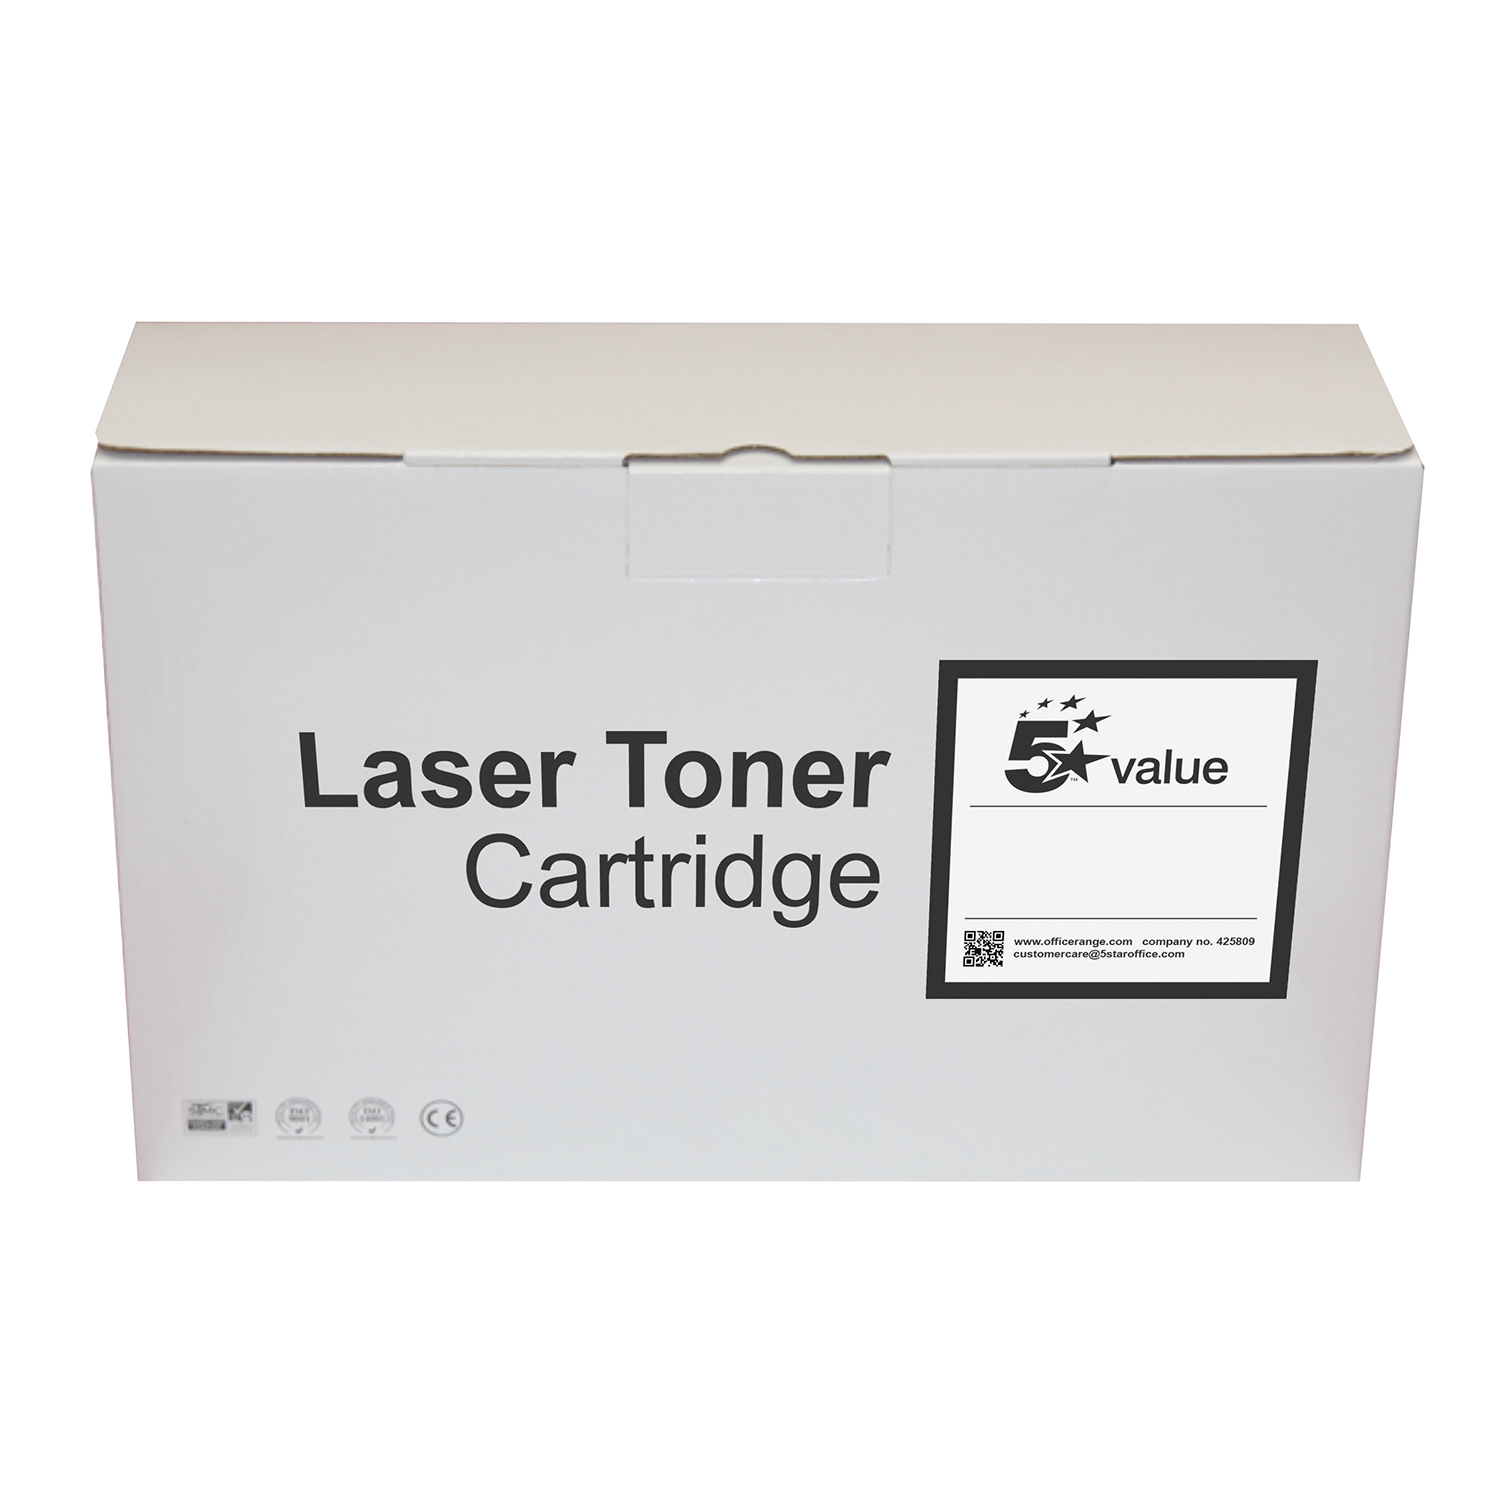 Laser Toner Cartridges 5 Star Value HP 49X Toner Cartridge Black Q5949X